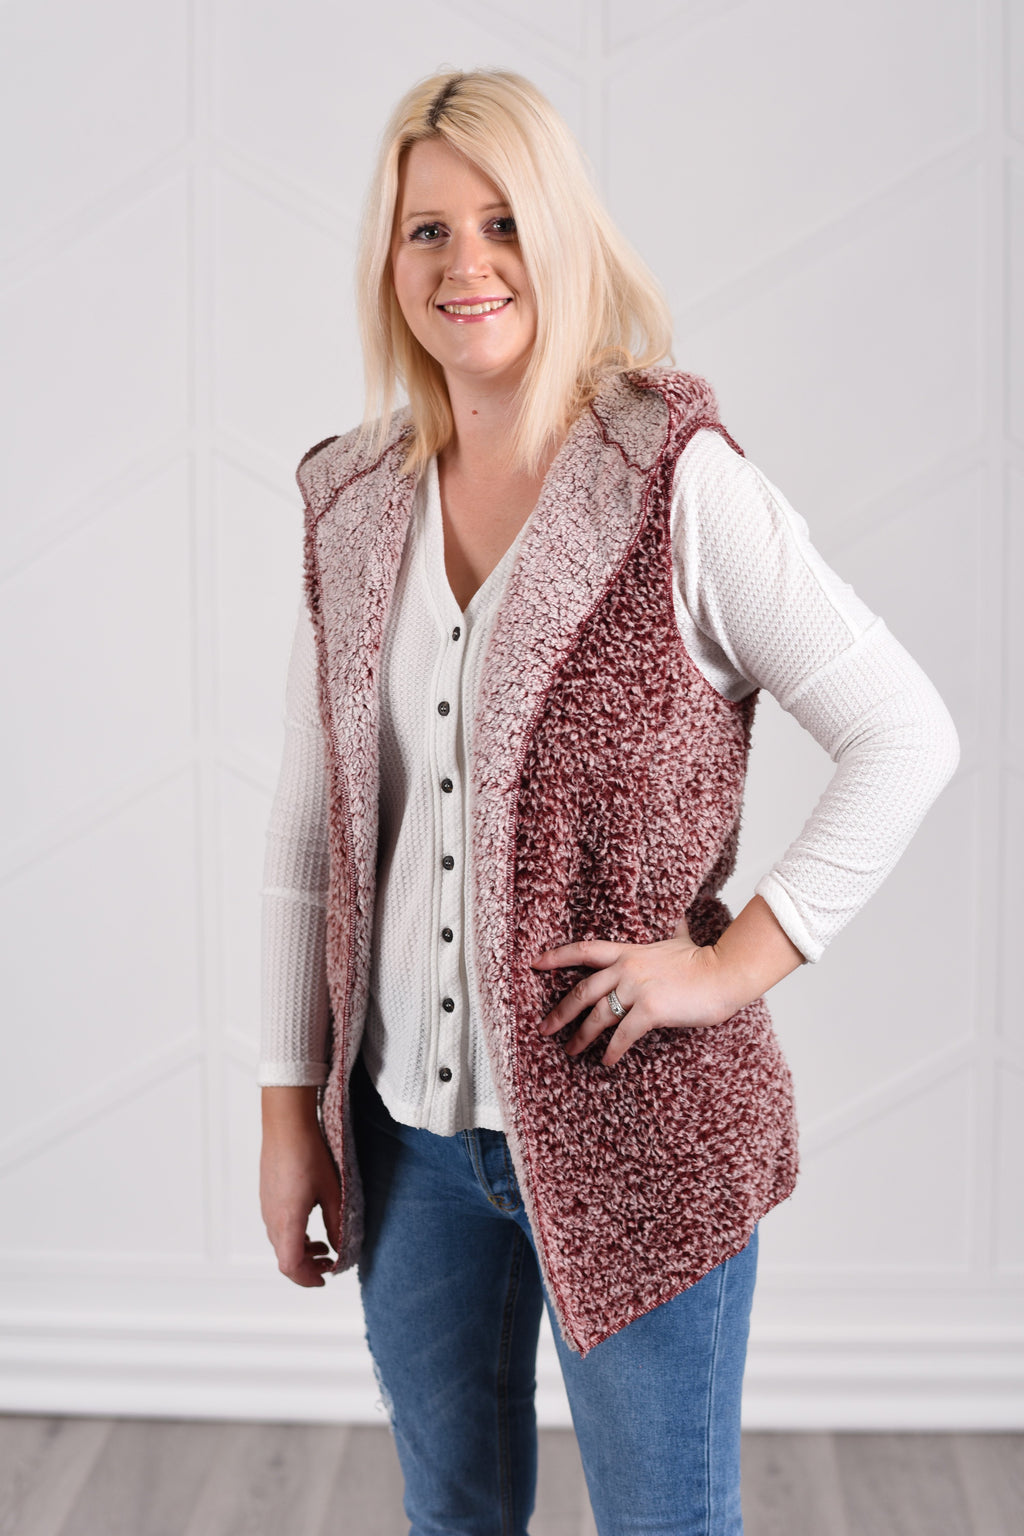 Aurora Vest - women's boutique clothing Strong Confident You